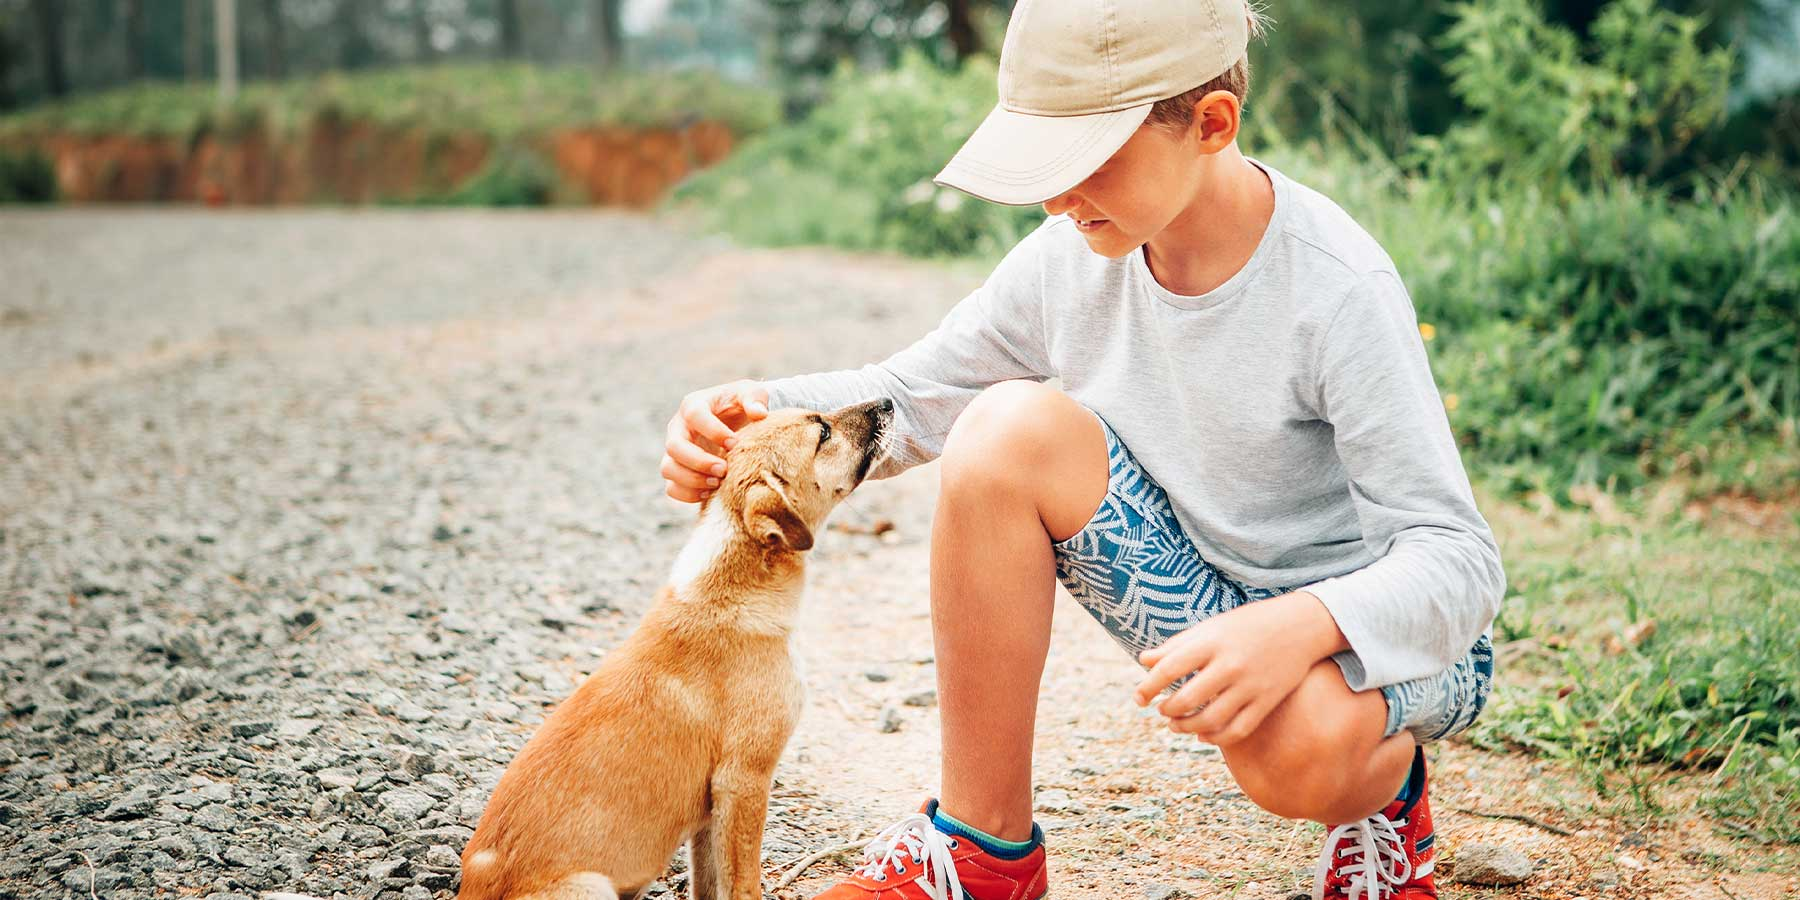 Showing Kindness towards Animals